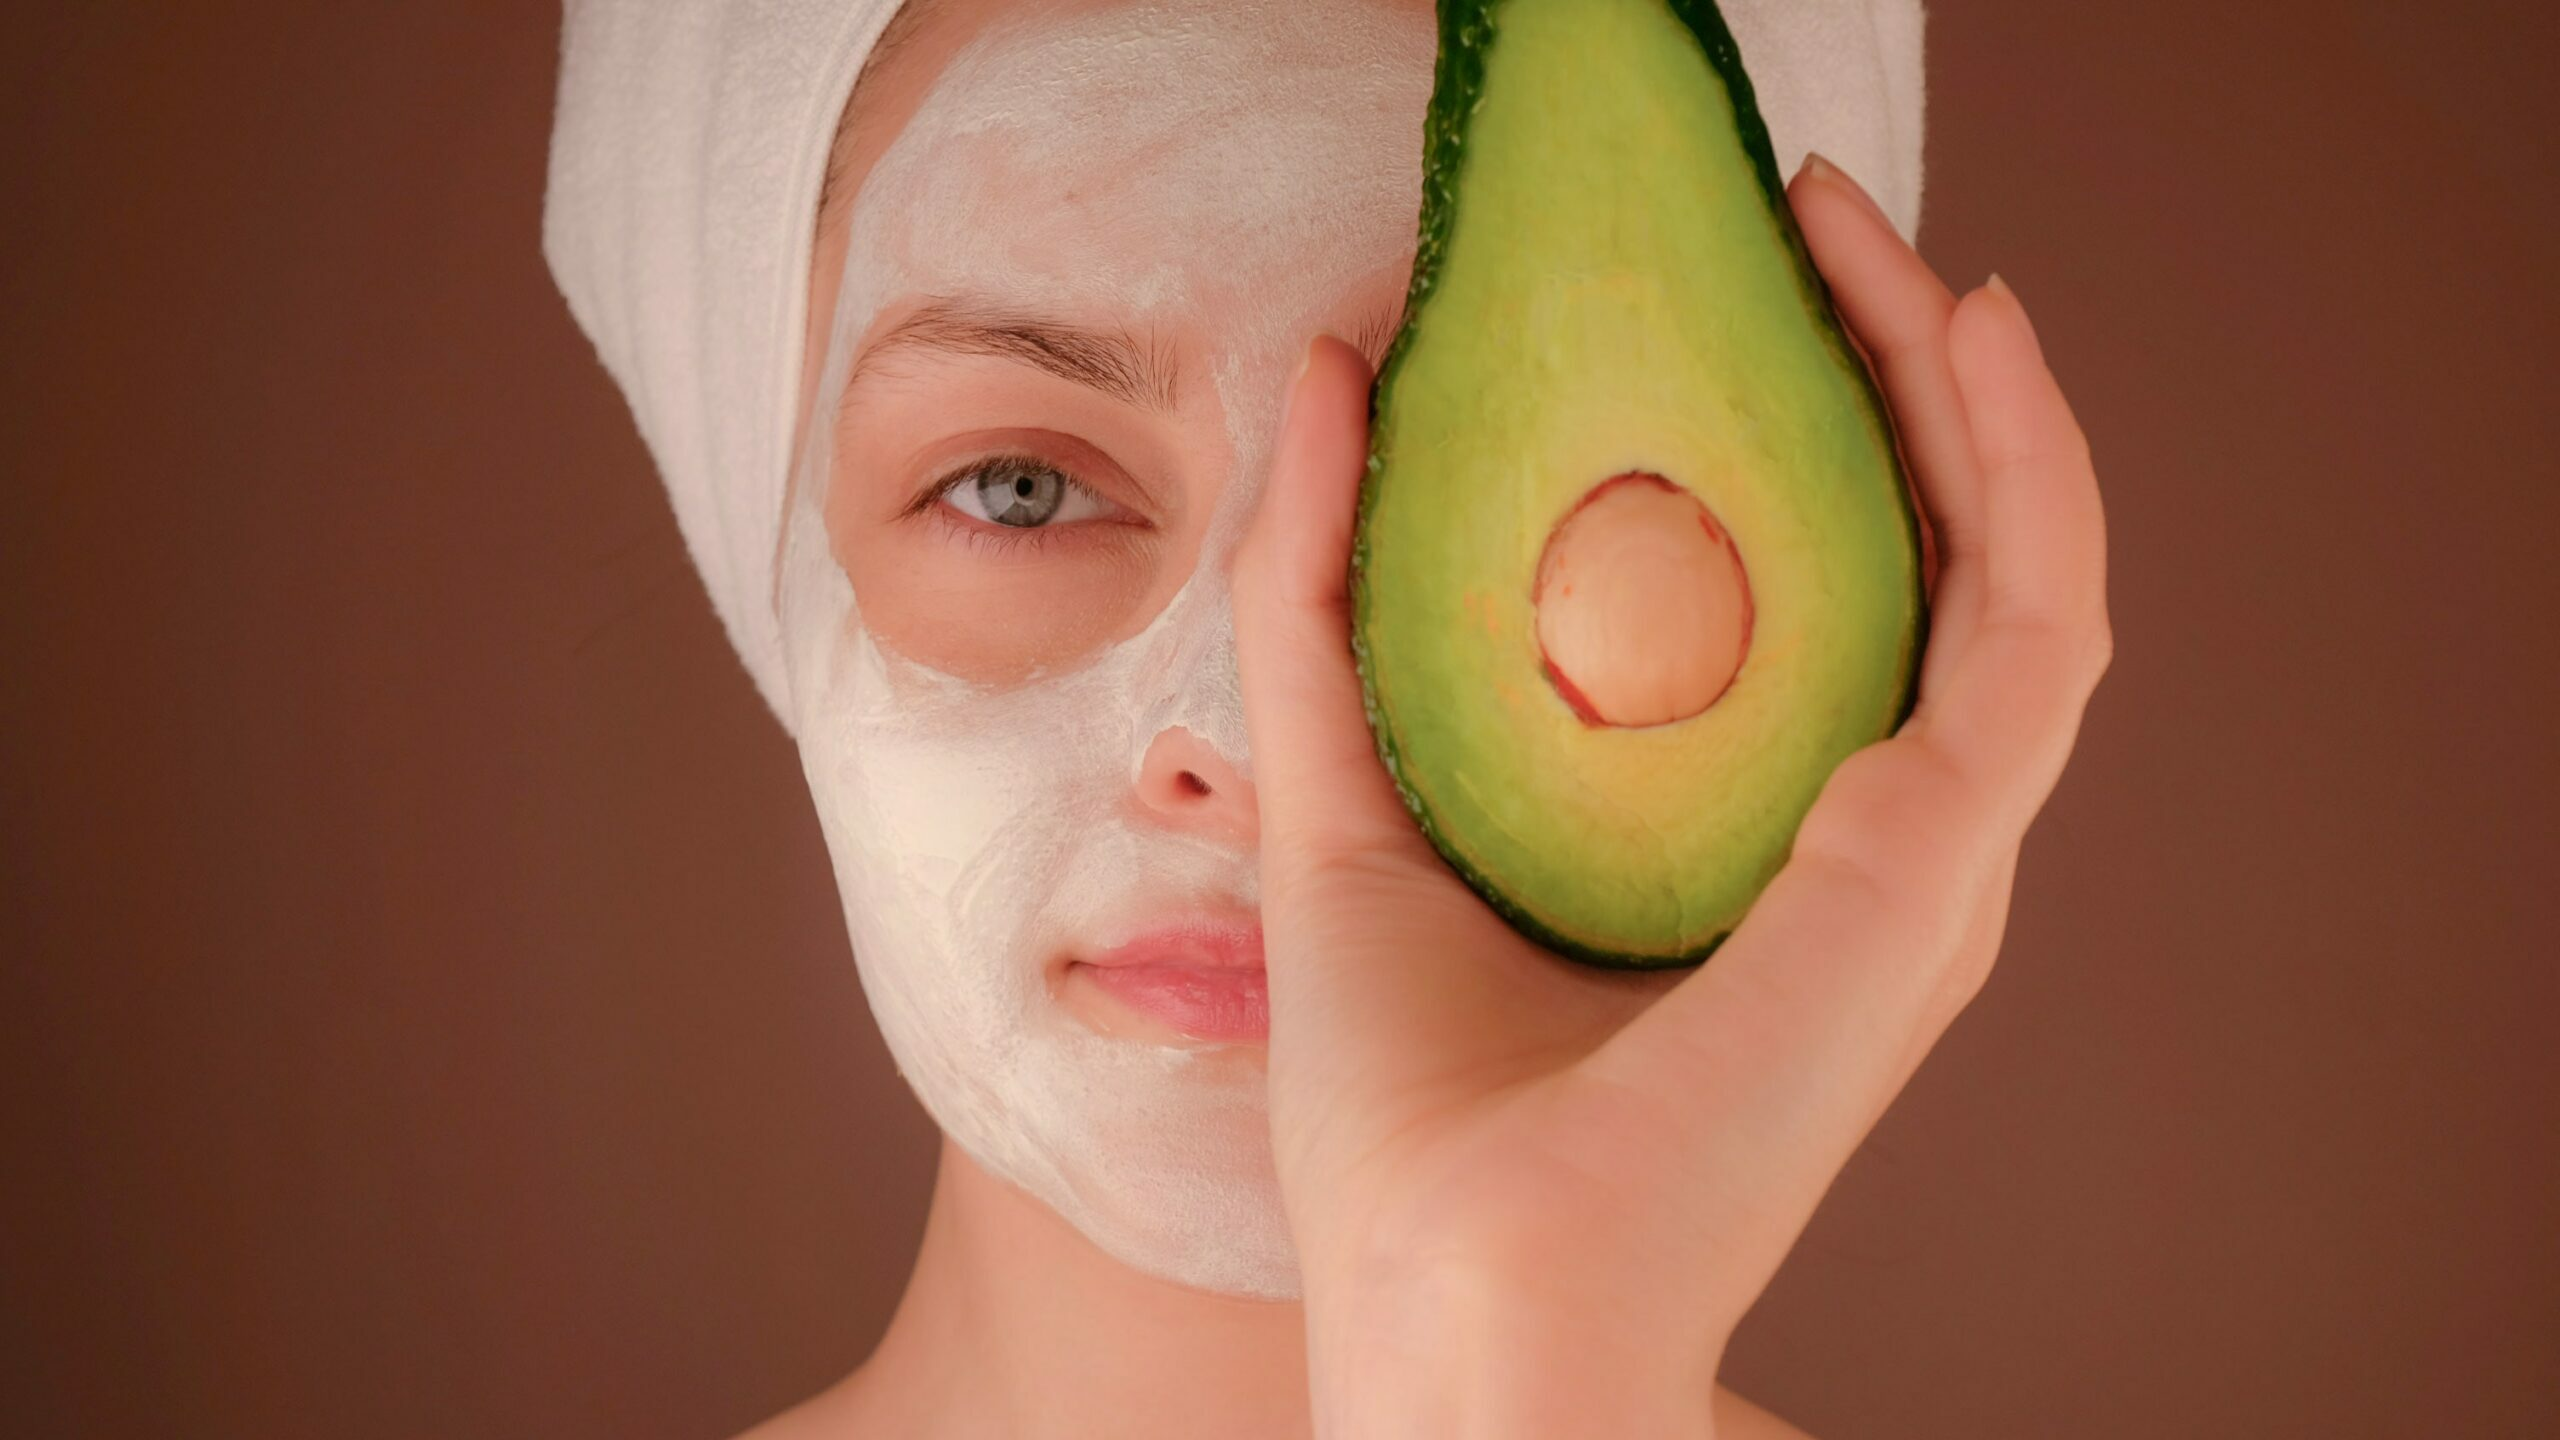 Avocado Oil for Skin: 5 Benefits and Tips from an Expert